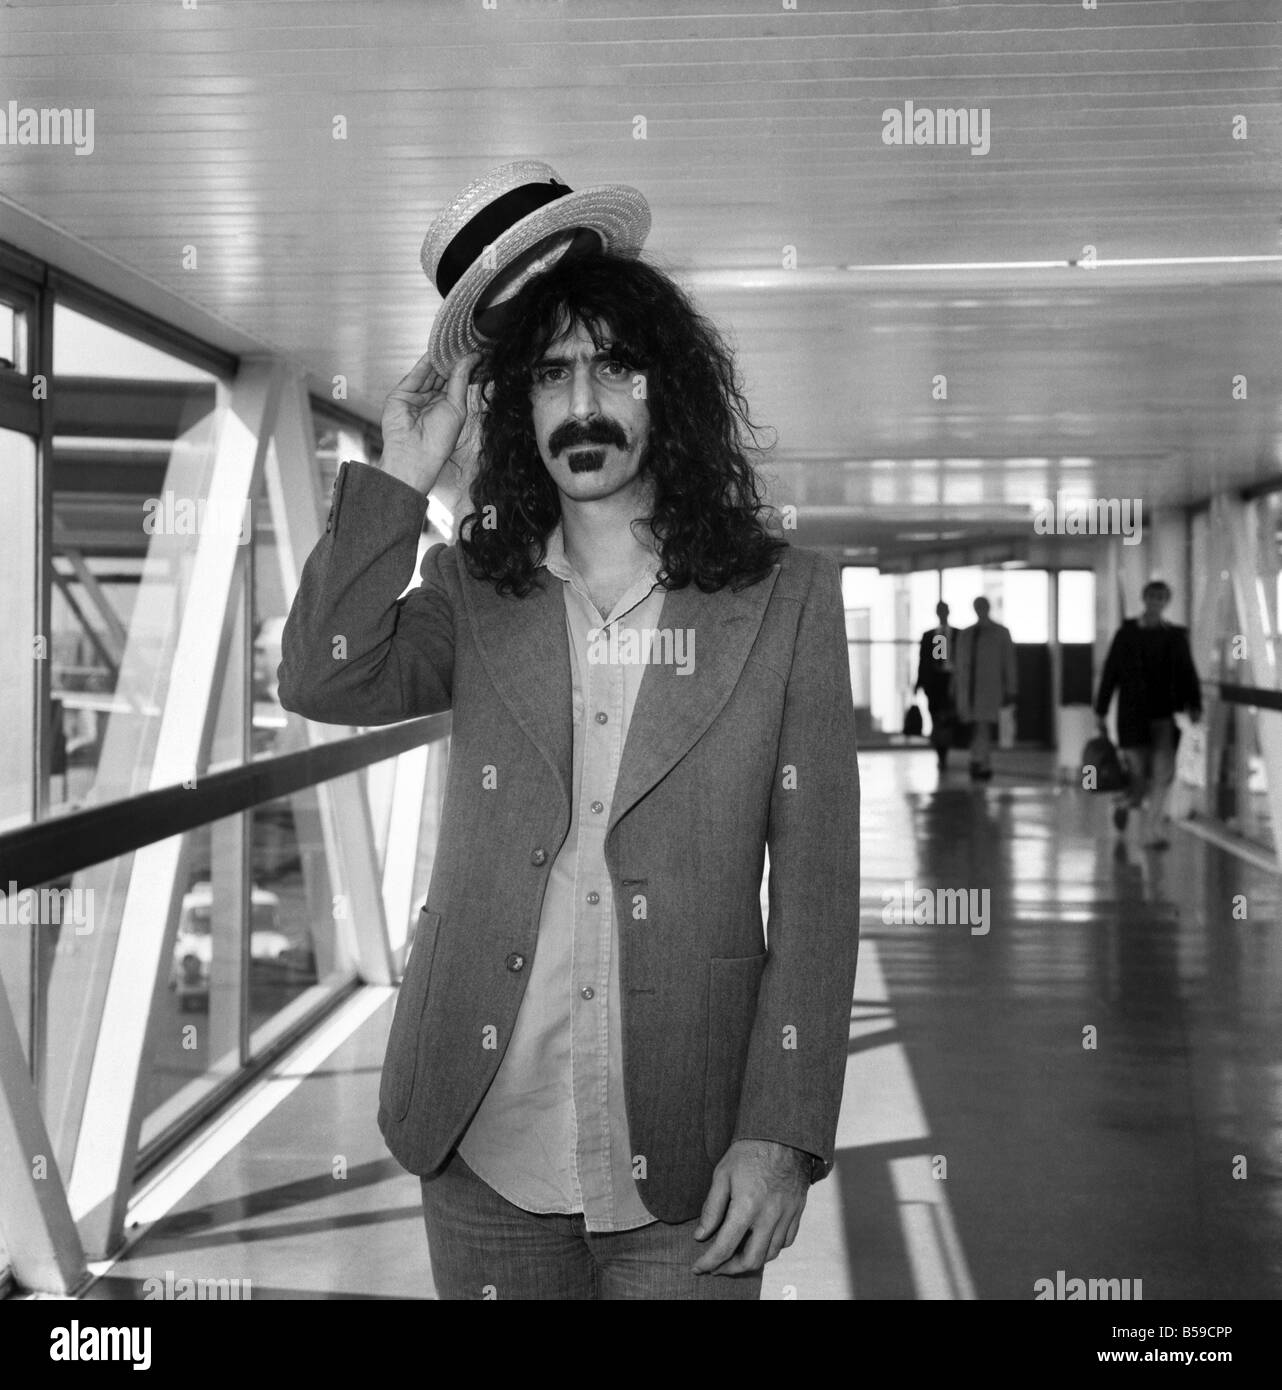 Rock Star Frank Zappa complete with straw boater hat at London's Heathrow airport. April 1975 75-1925 - Stock Image